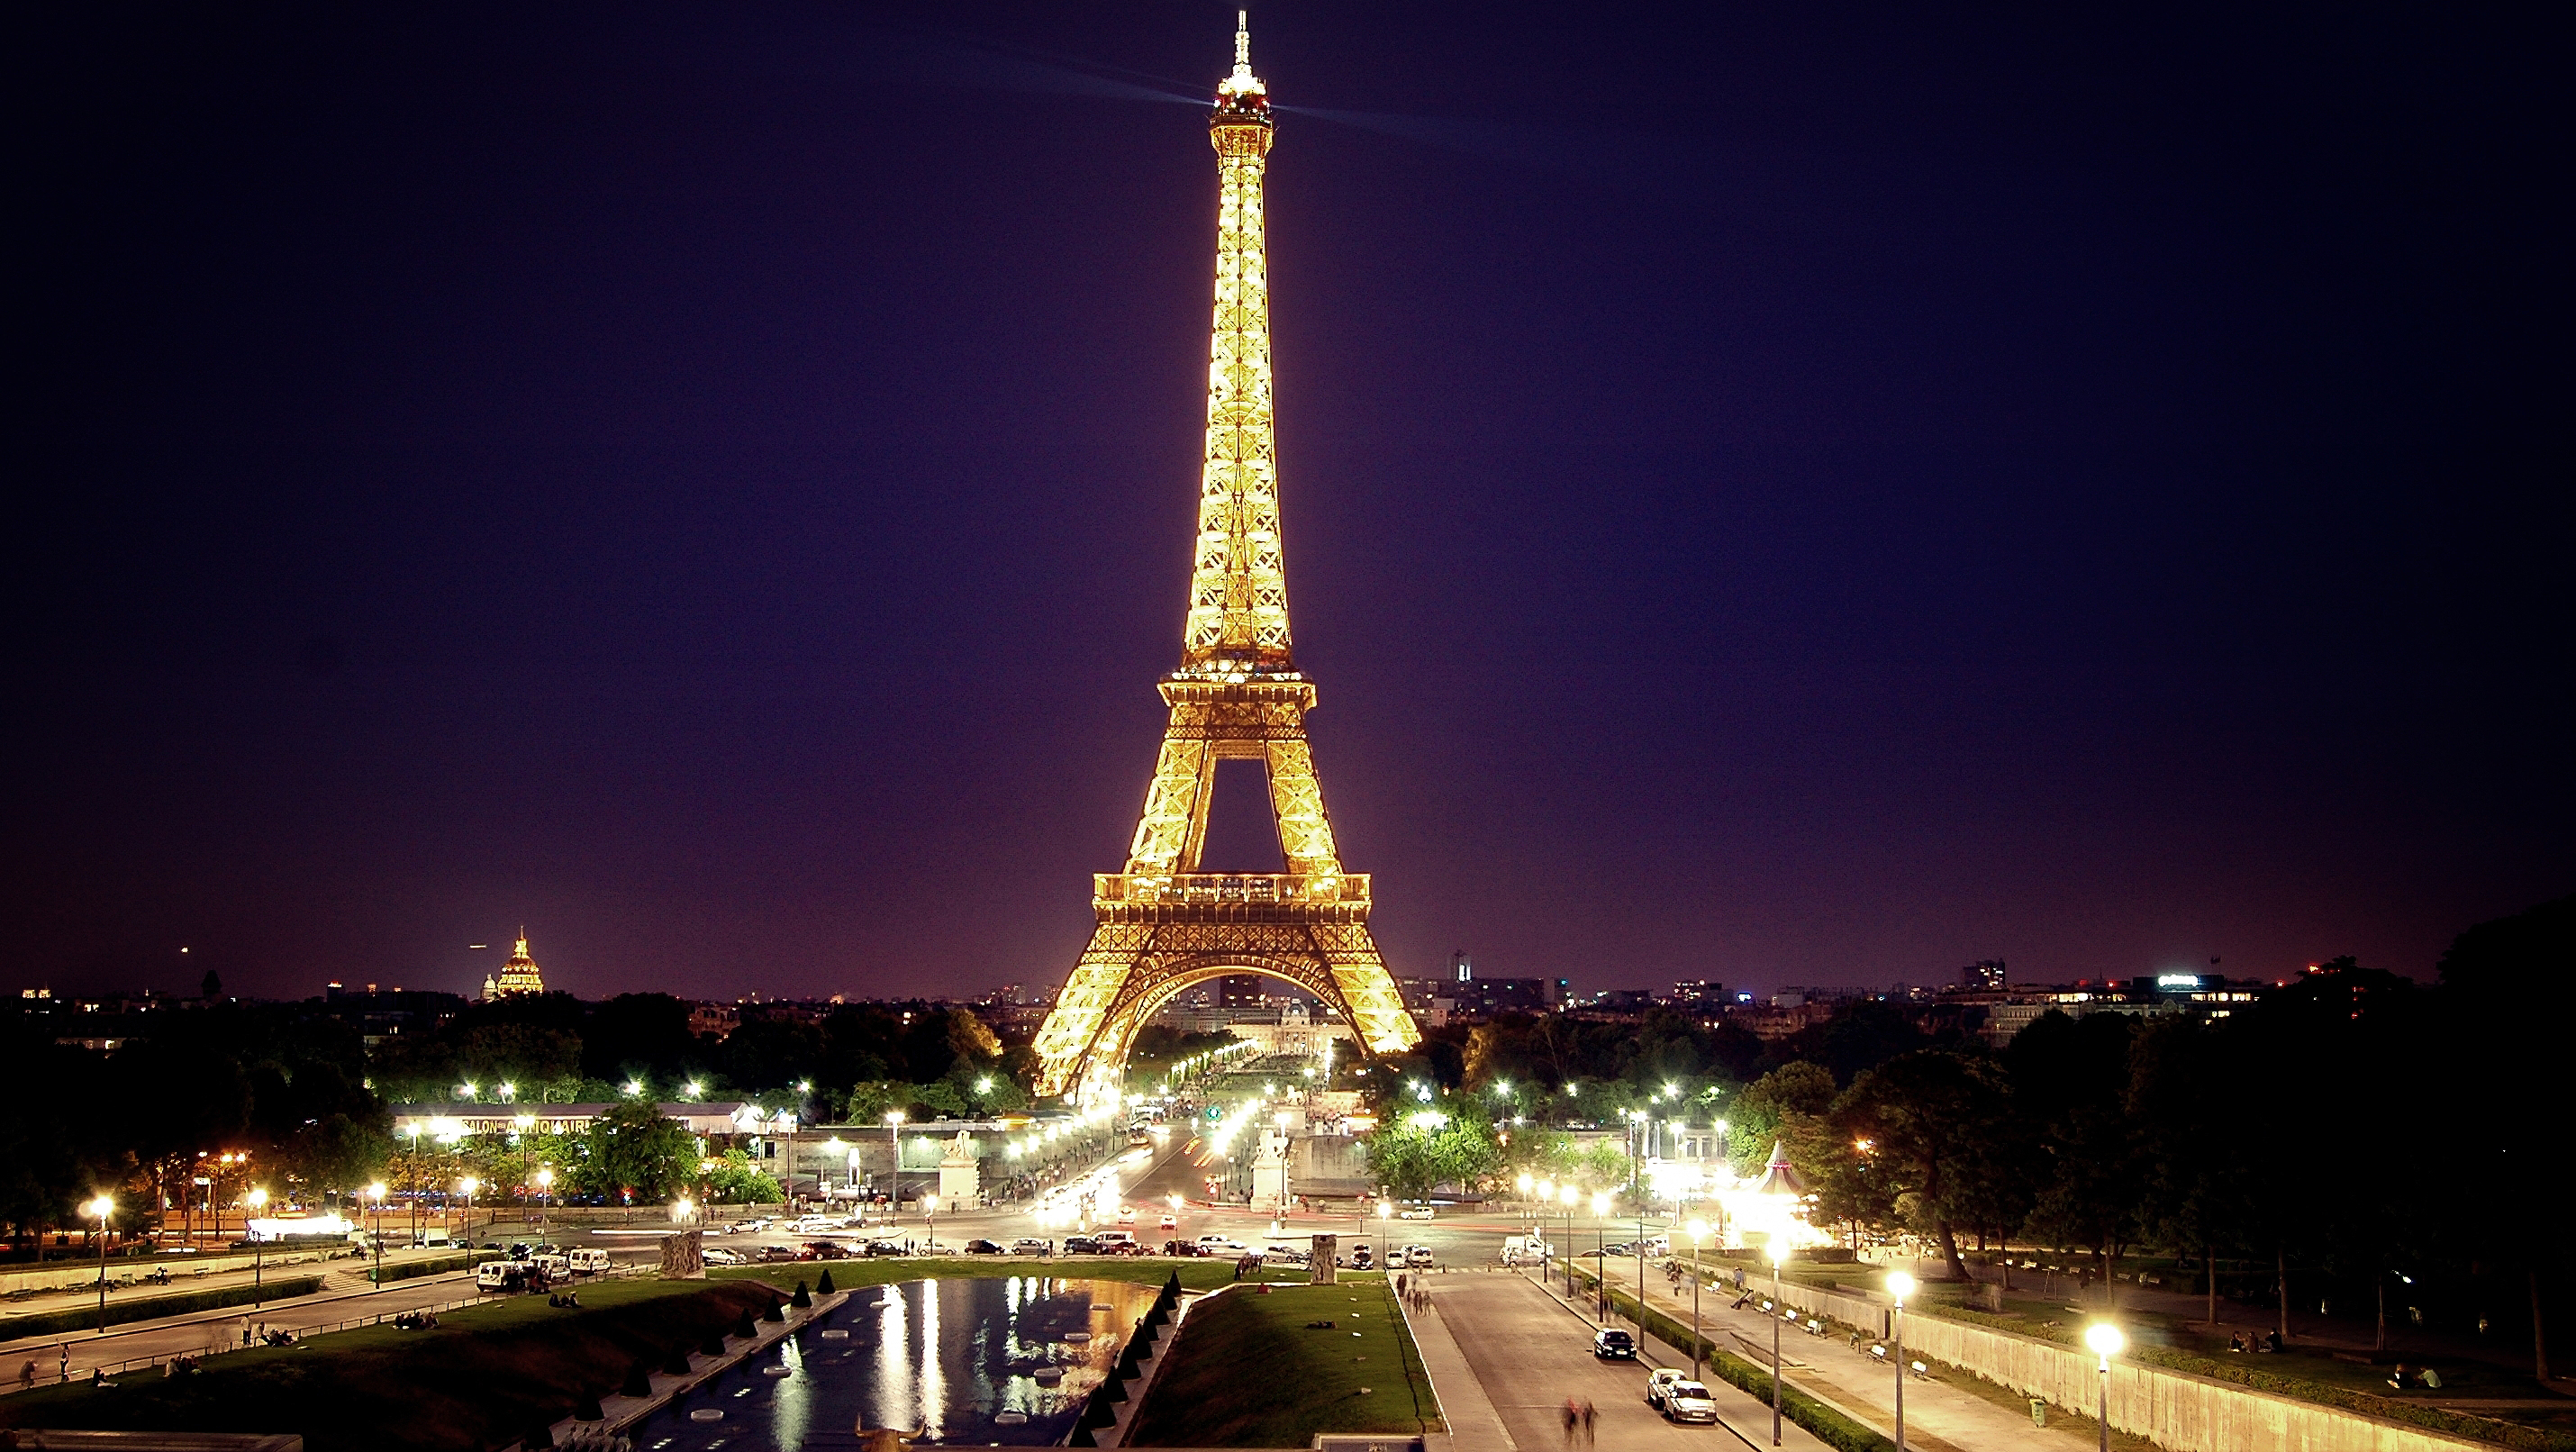 File tour eiffel de wikimedia commons - Tour eiffel image ...